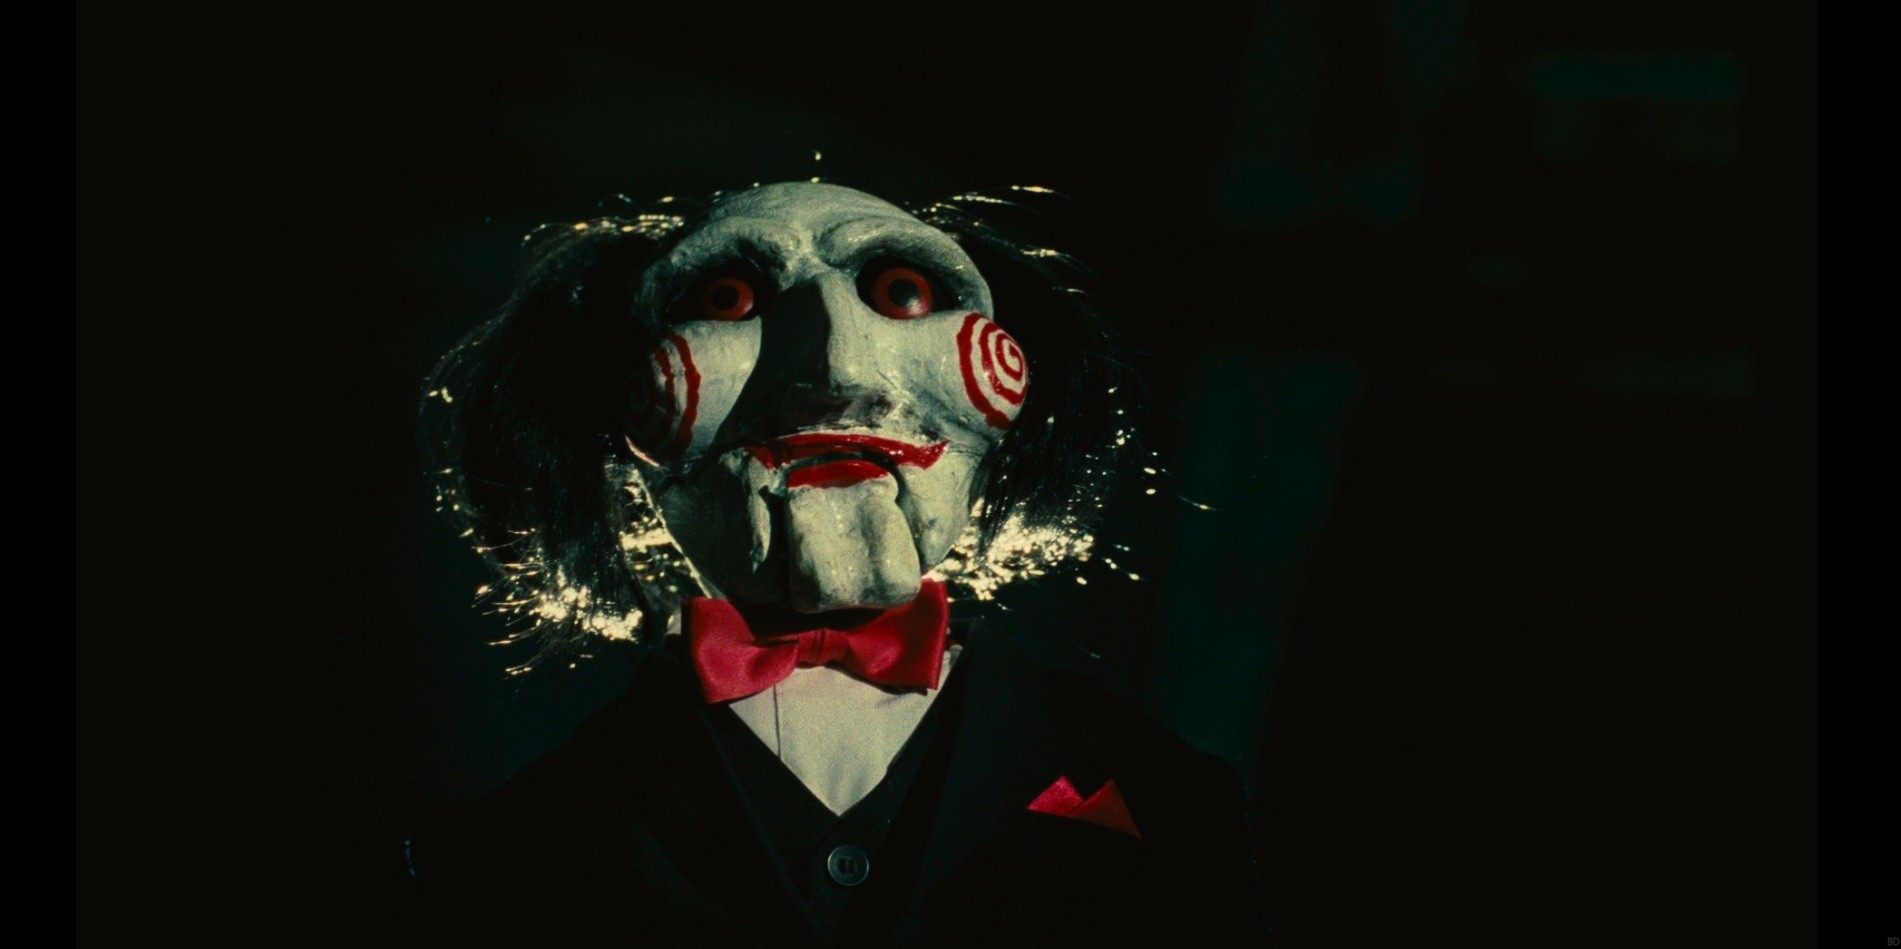 Billy the Puppet: The Creepy Mascot of 'Jigsaw' - Bloody